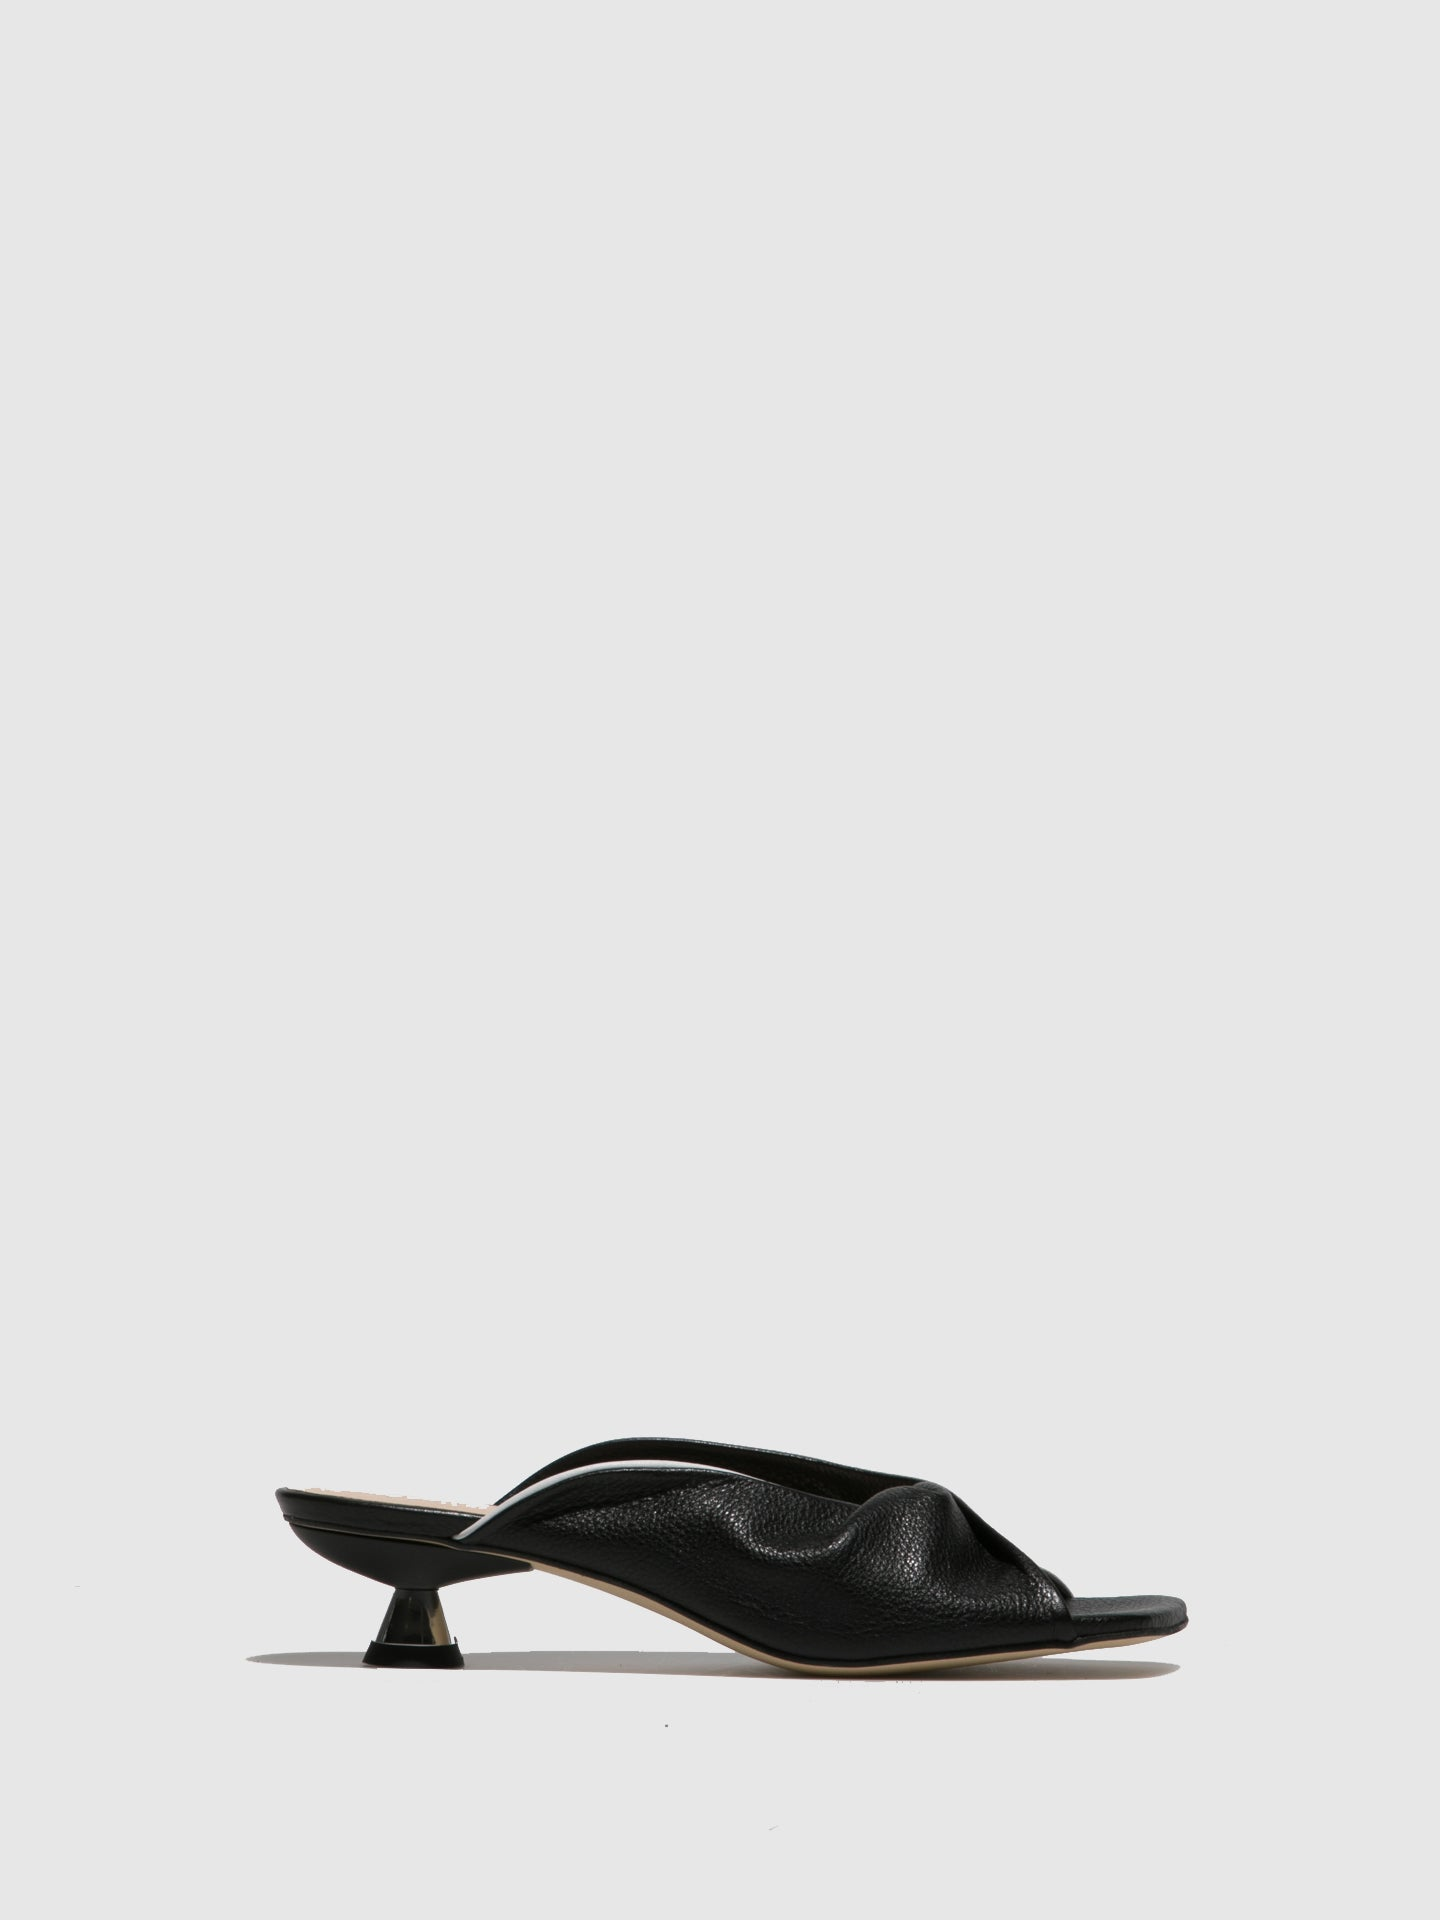 Sofia Costa Black White Kitten Heel Mules